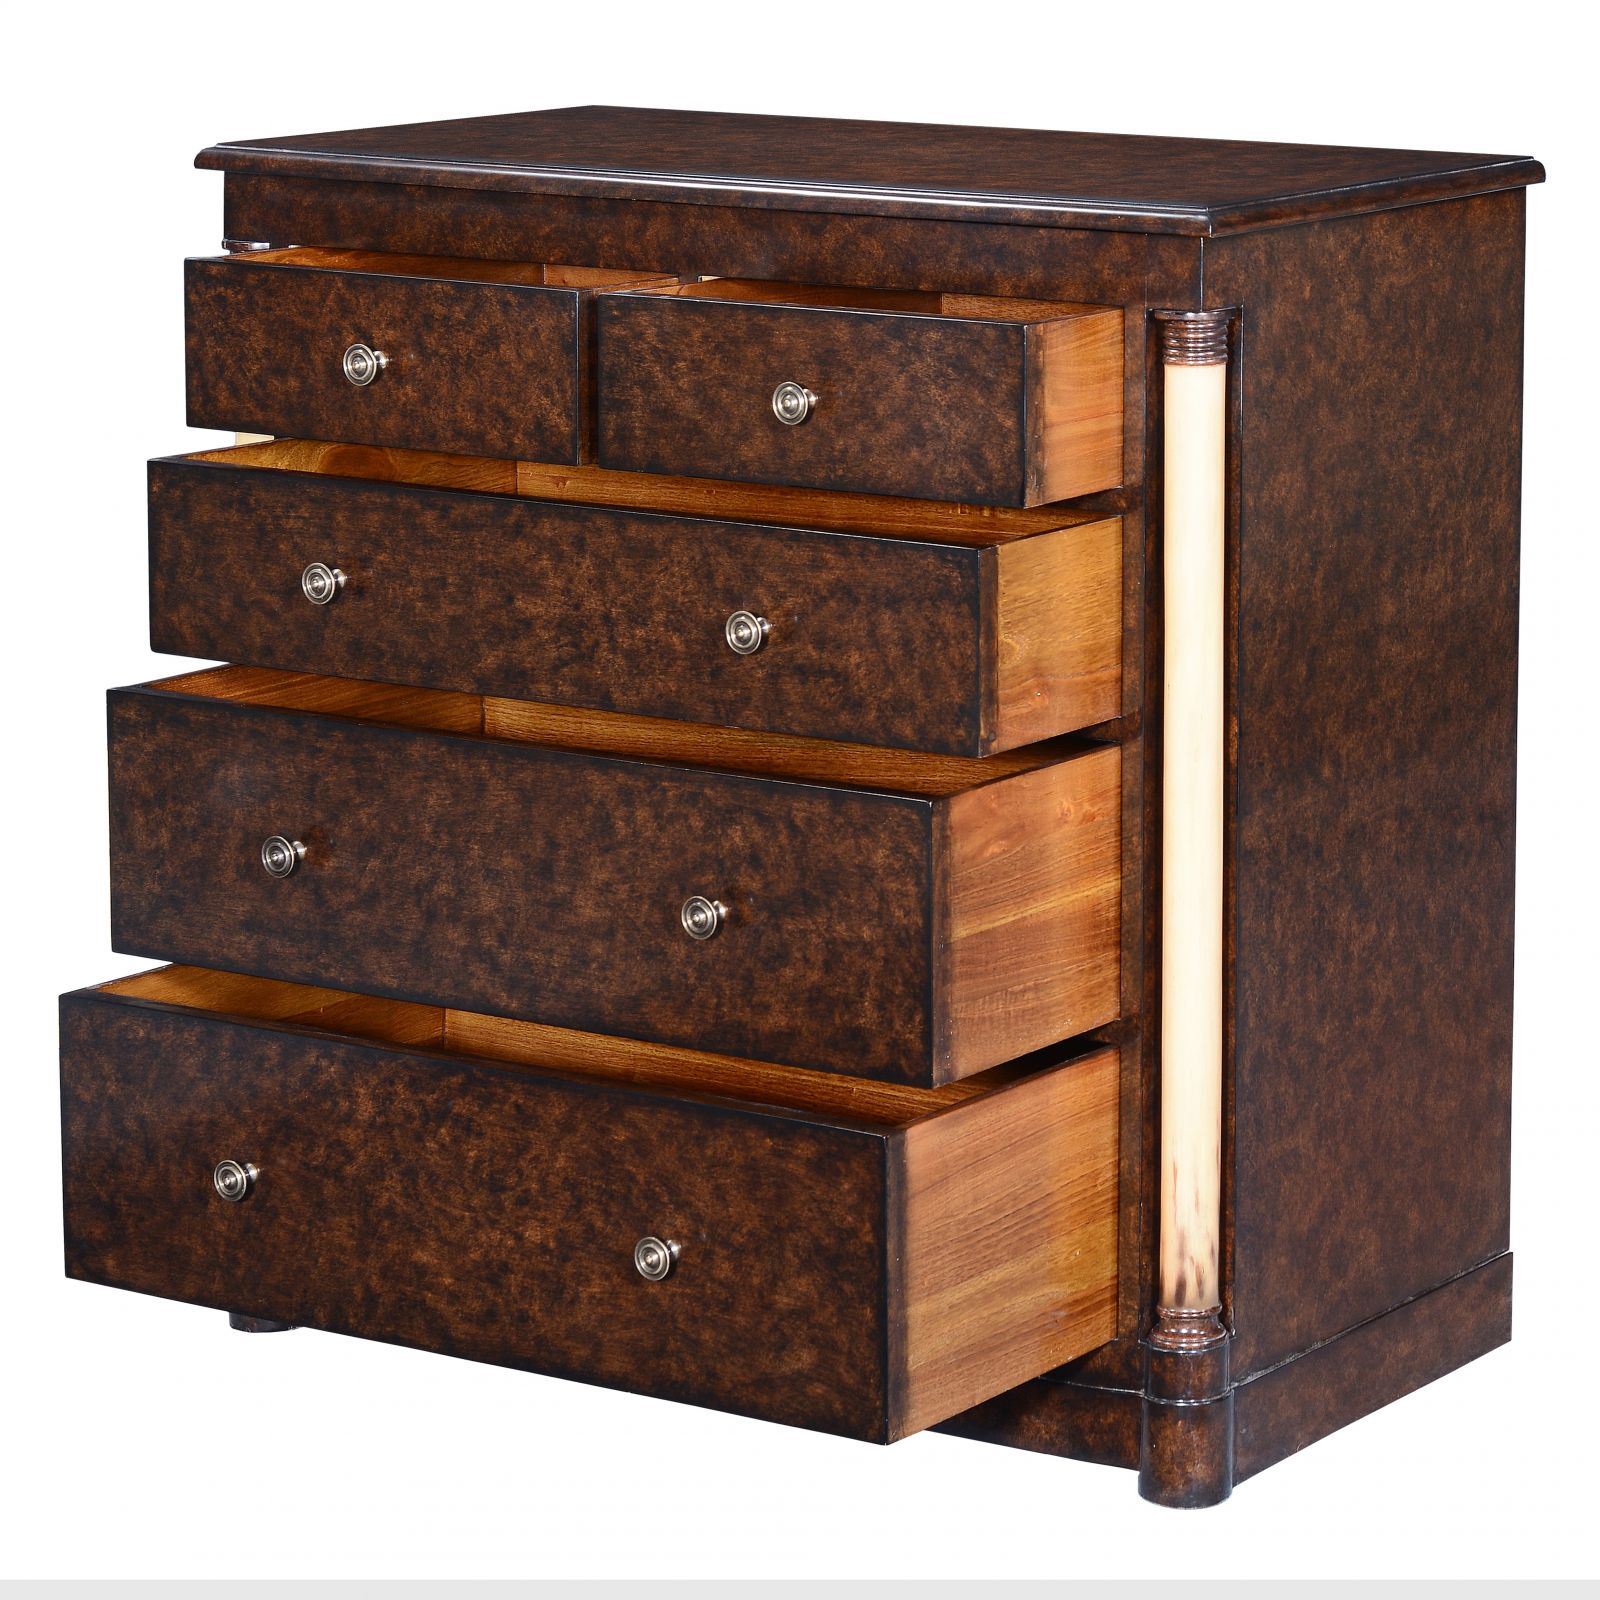 Empire chest of 5 drawers - dark burr oak painted